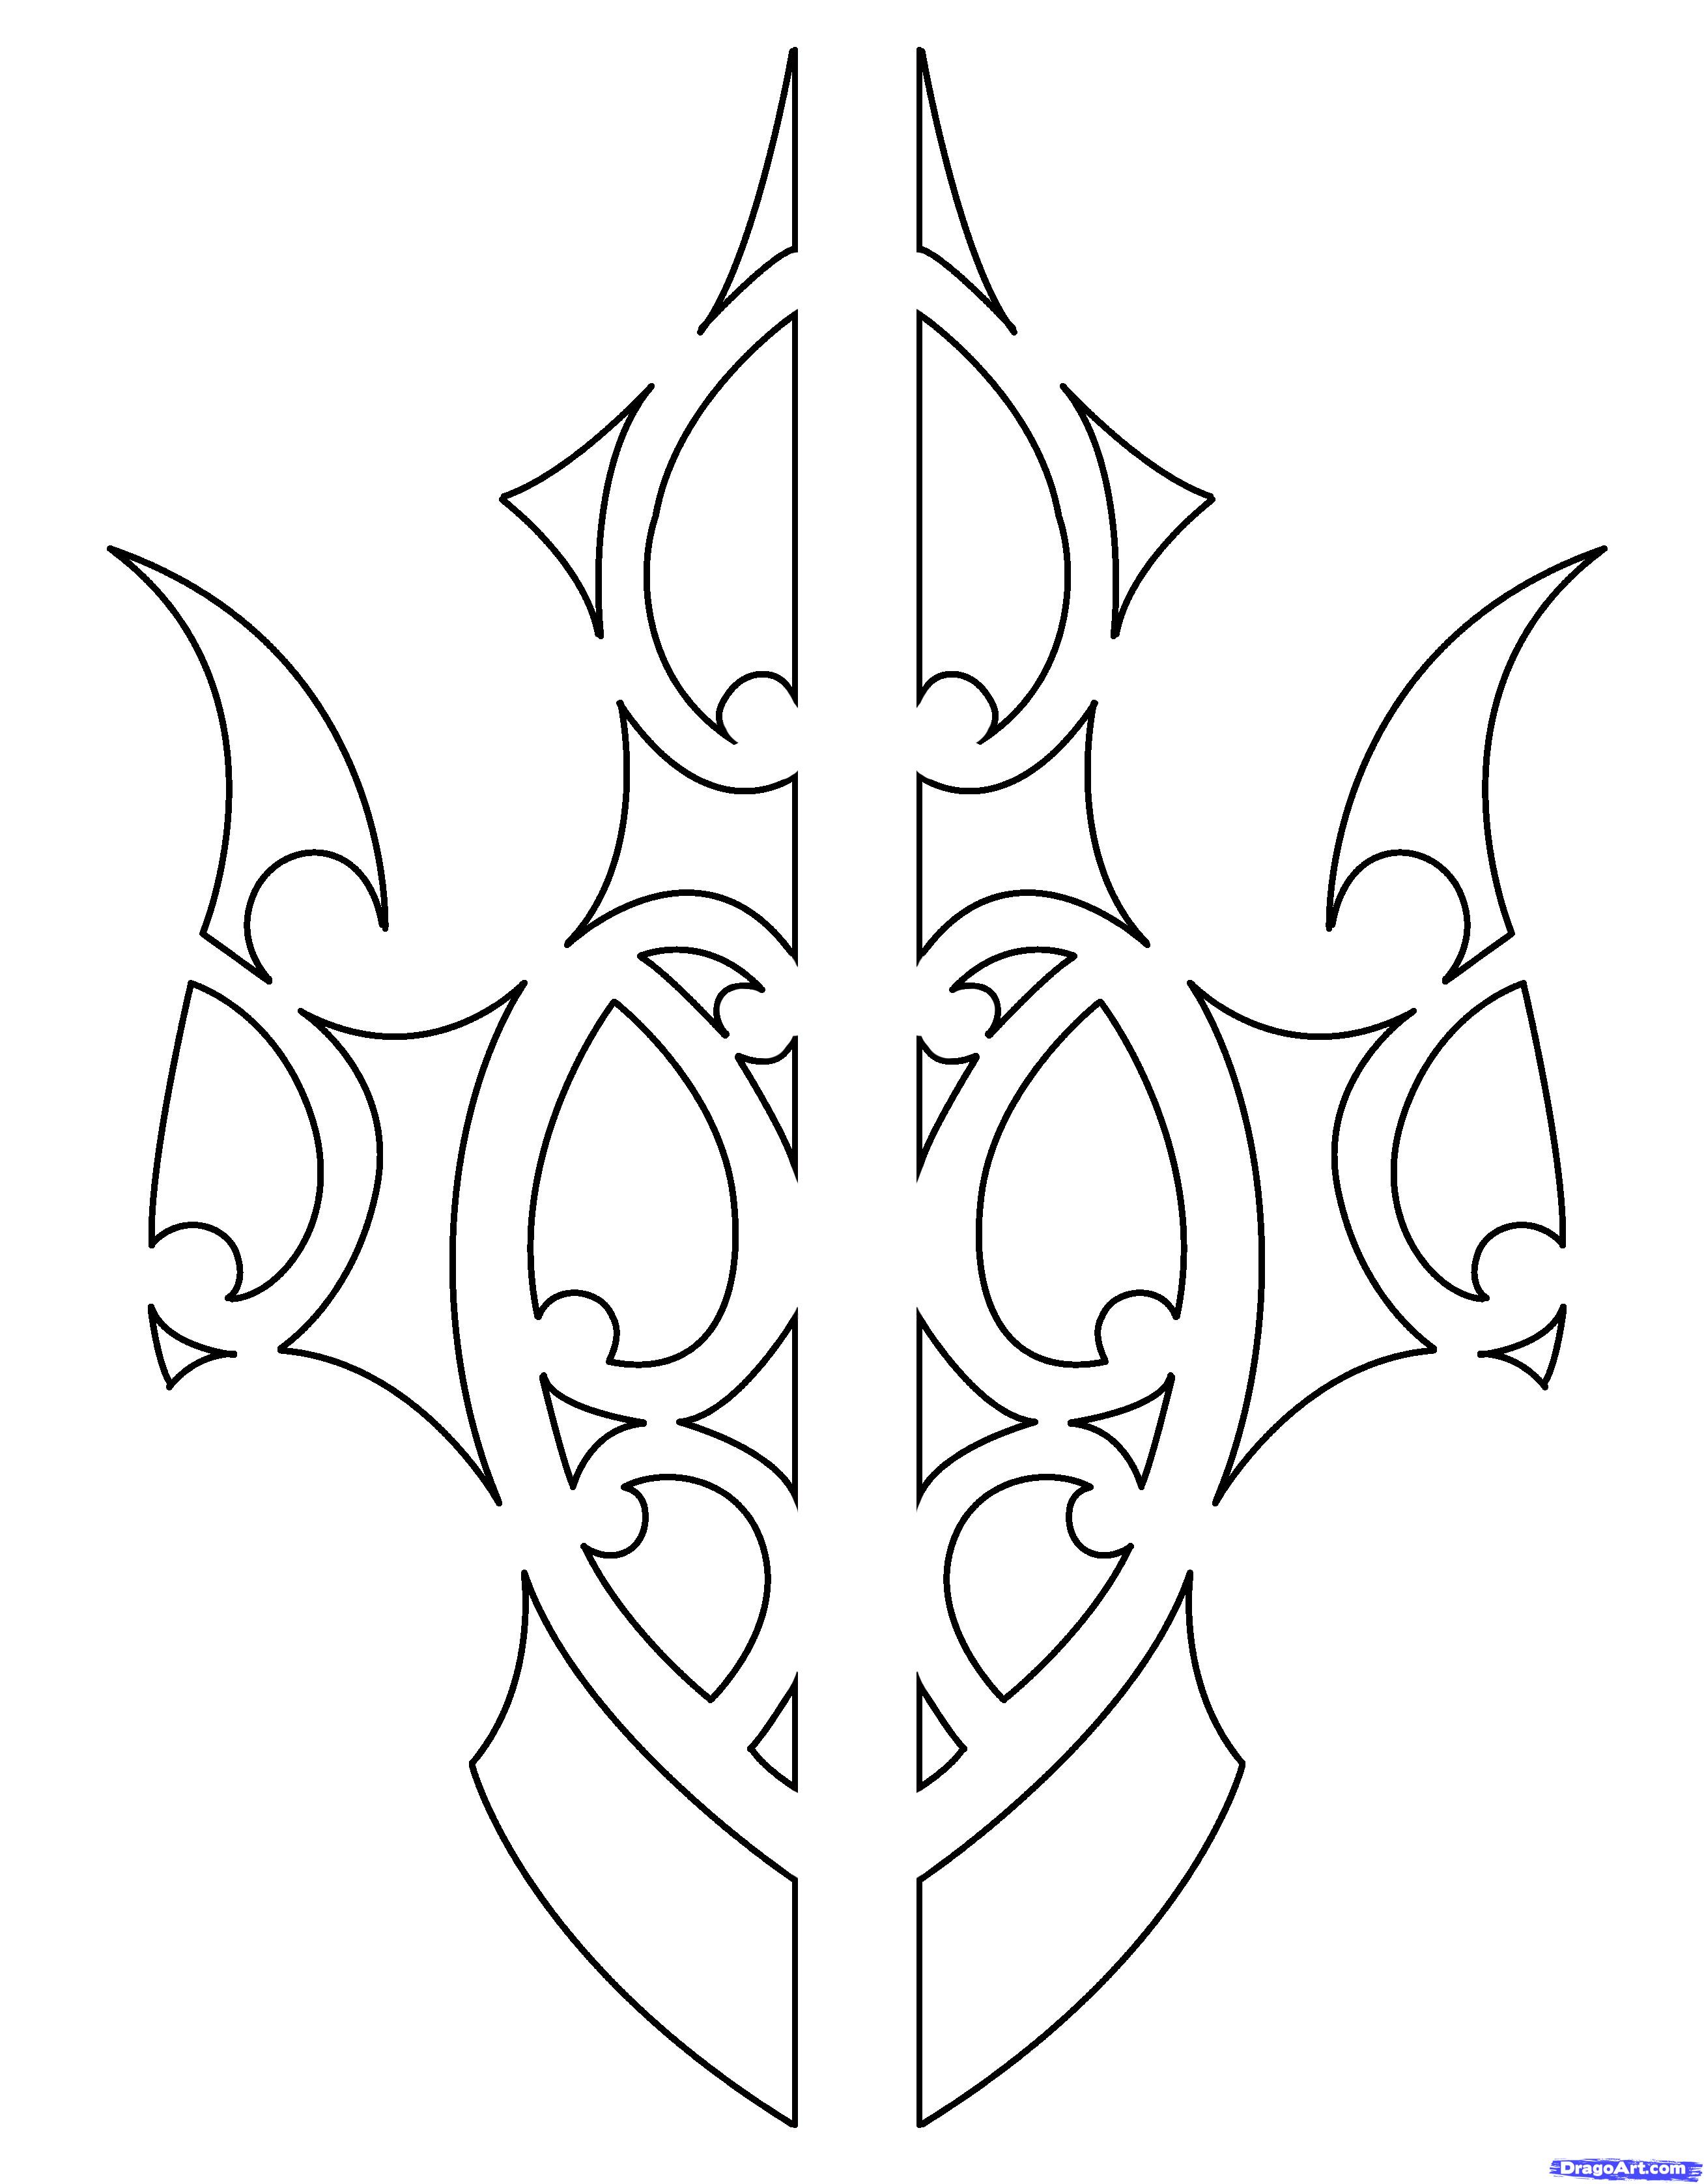 18 simple designs to draw images cool draw easy tattoo for Cool drawing designs step by step